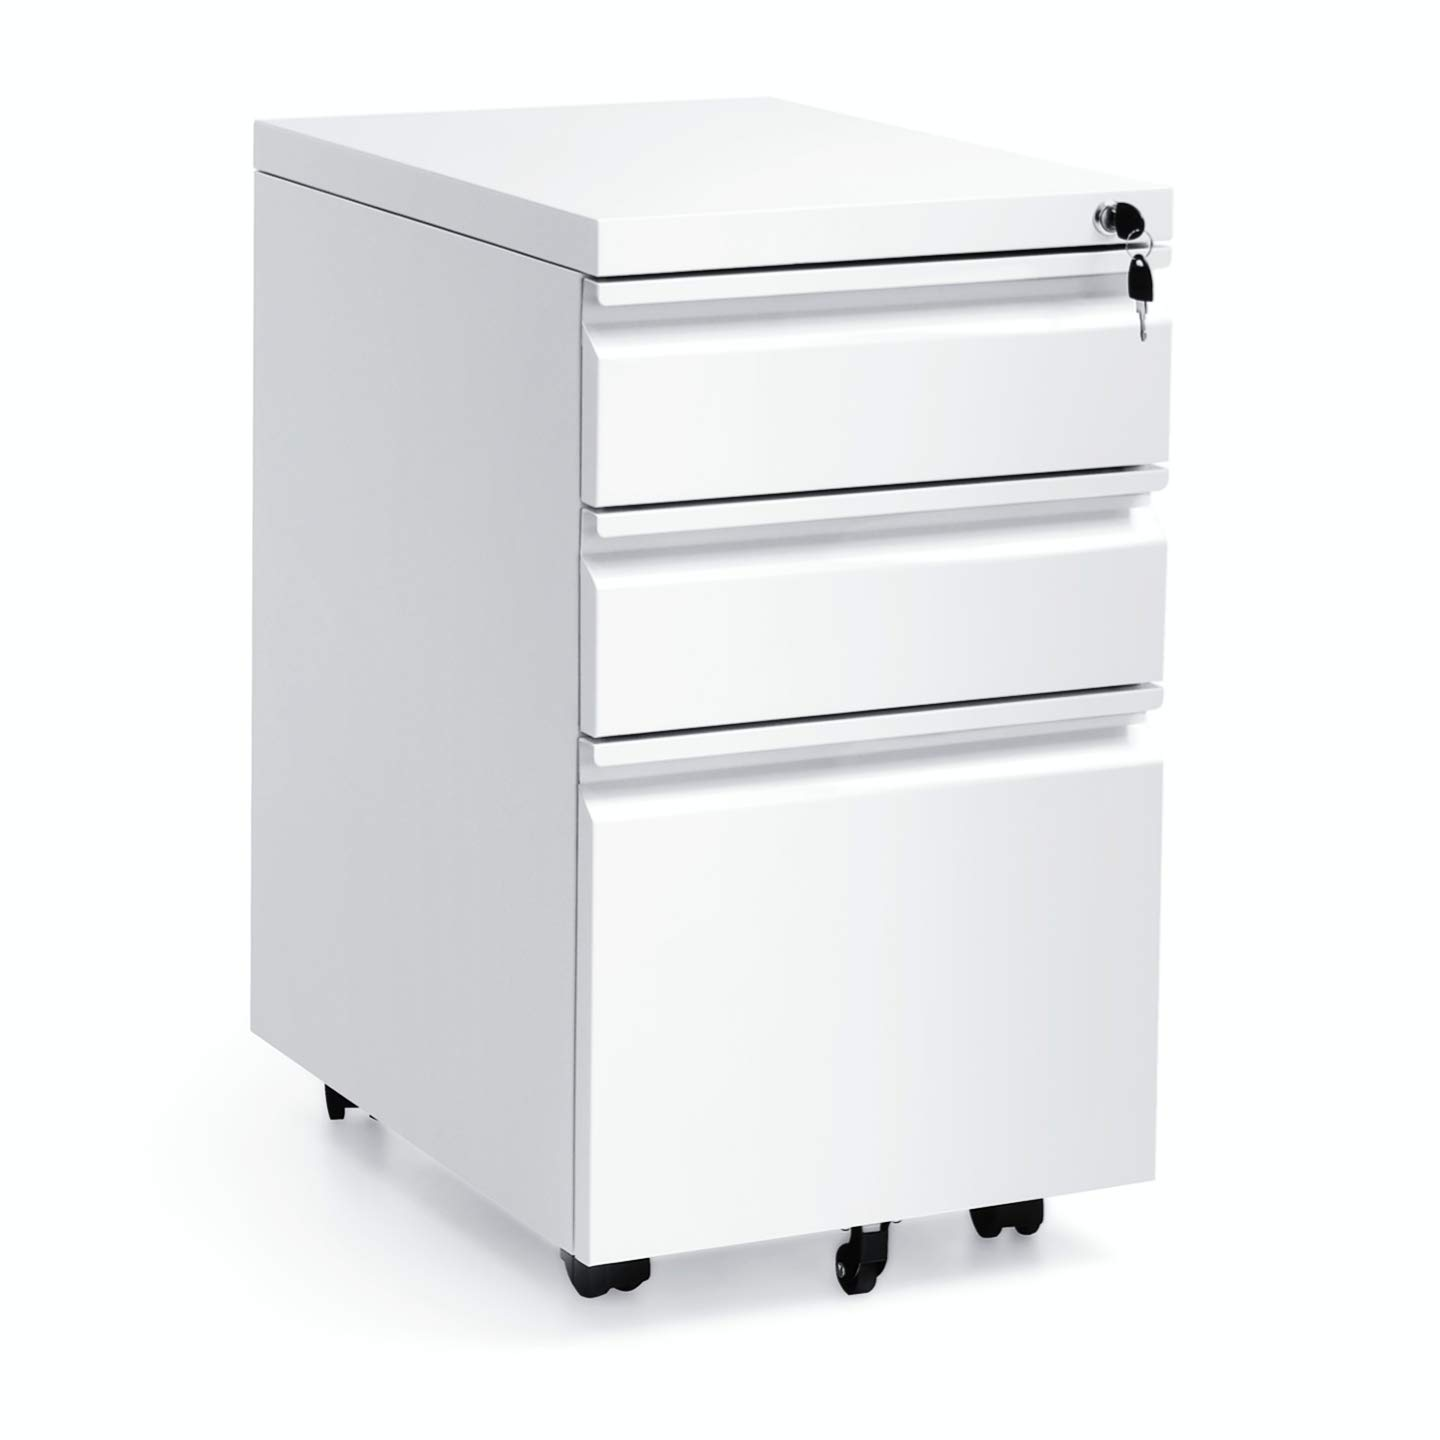 White Mobile 3 Drawer Filing Cabinet 26 Inch Locking Rolling File Cabinet with 5 Wheels Pedestal Filing Cabinet for Office Home Metal White A by INTERGREAT